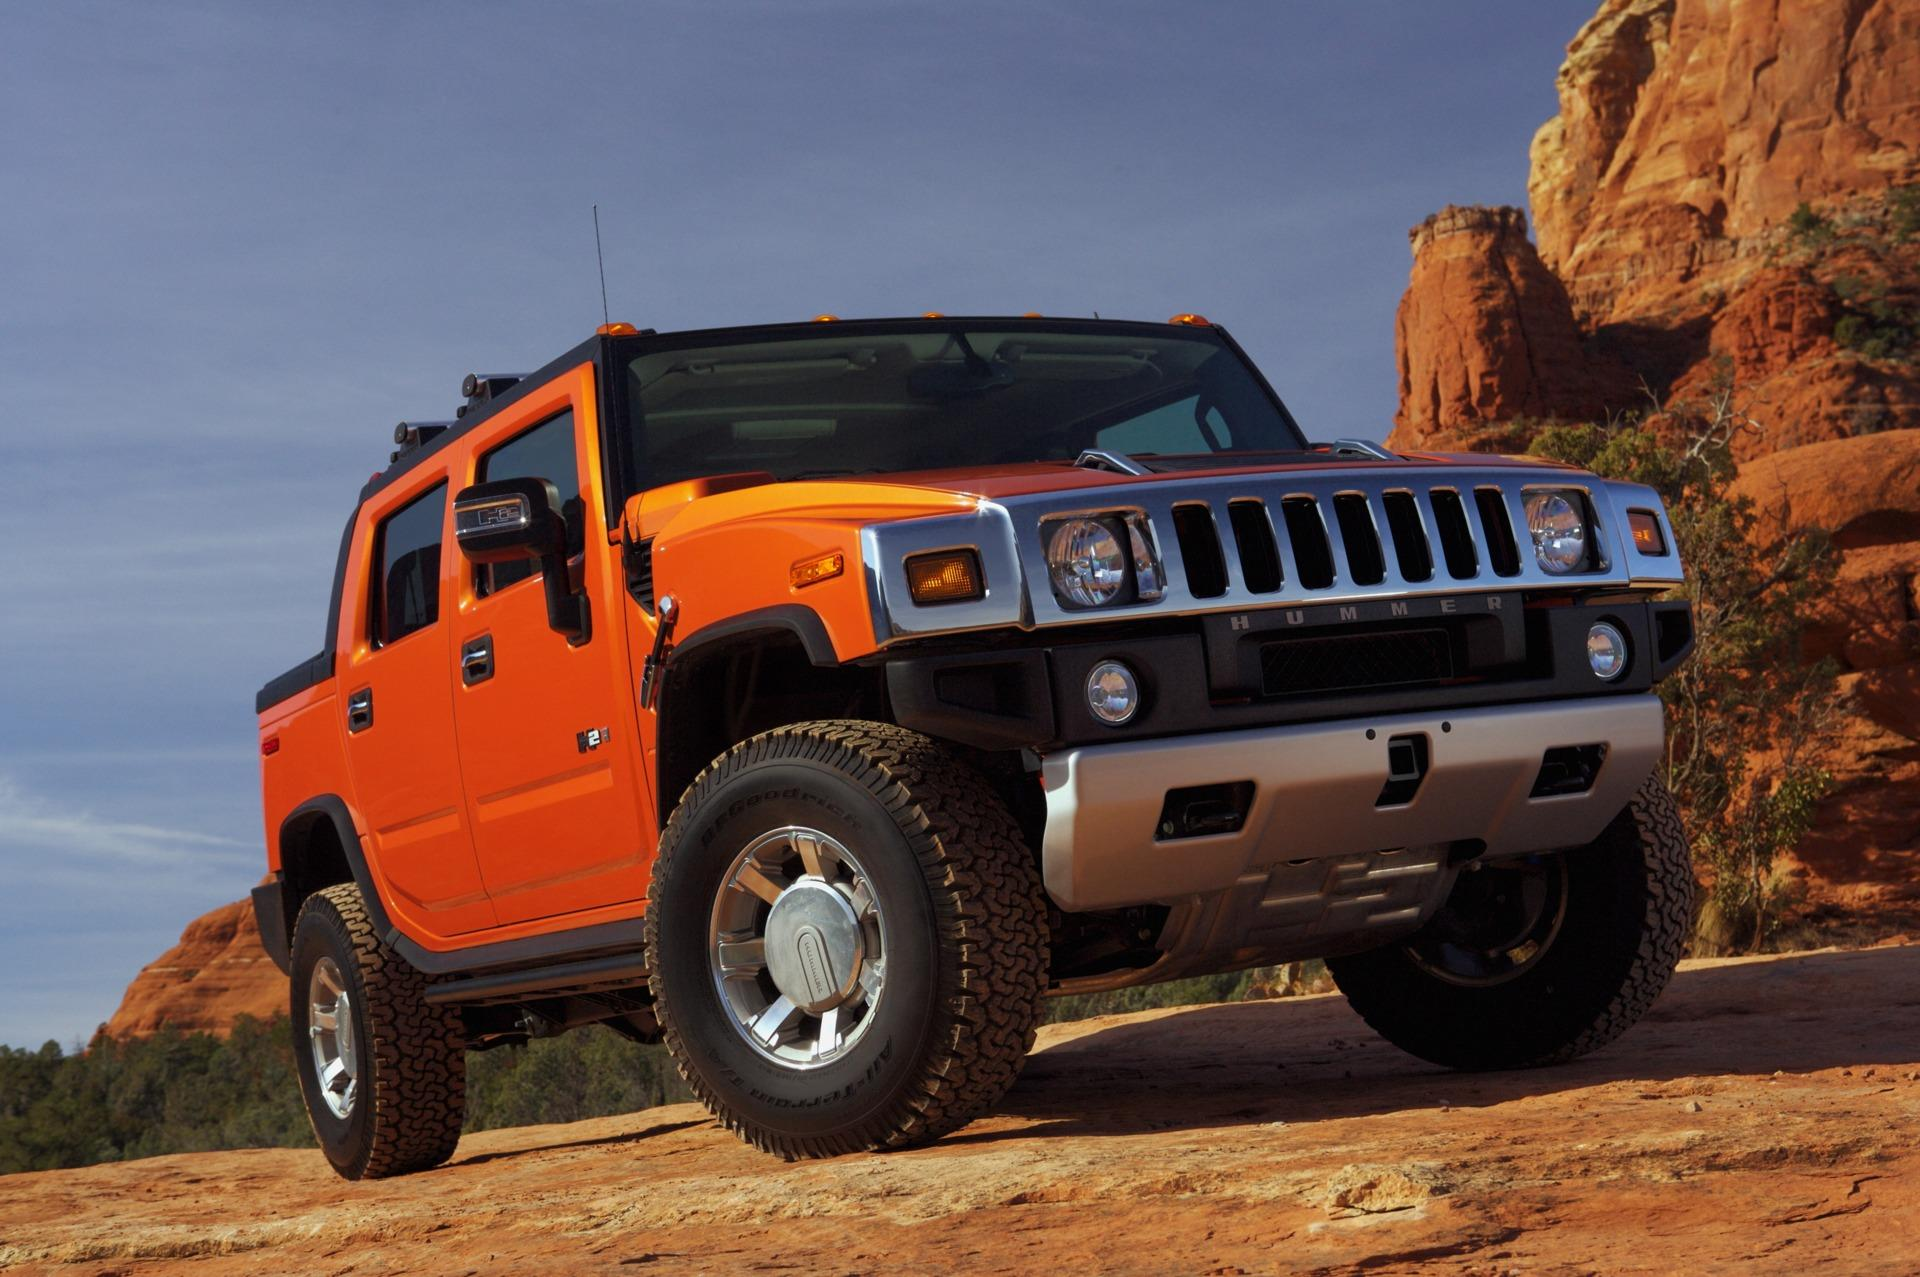 Ford Truck Hd Wallpaper 2009 Hummer H2 Sut News And Information Conceptcarz Com